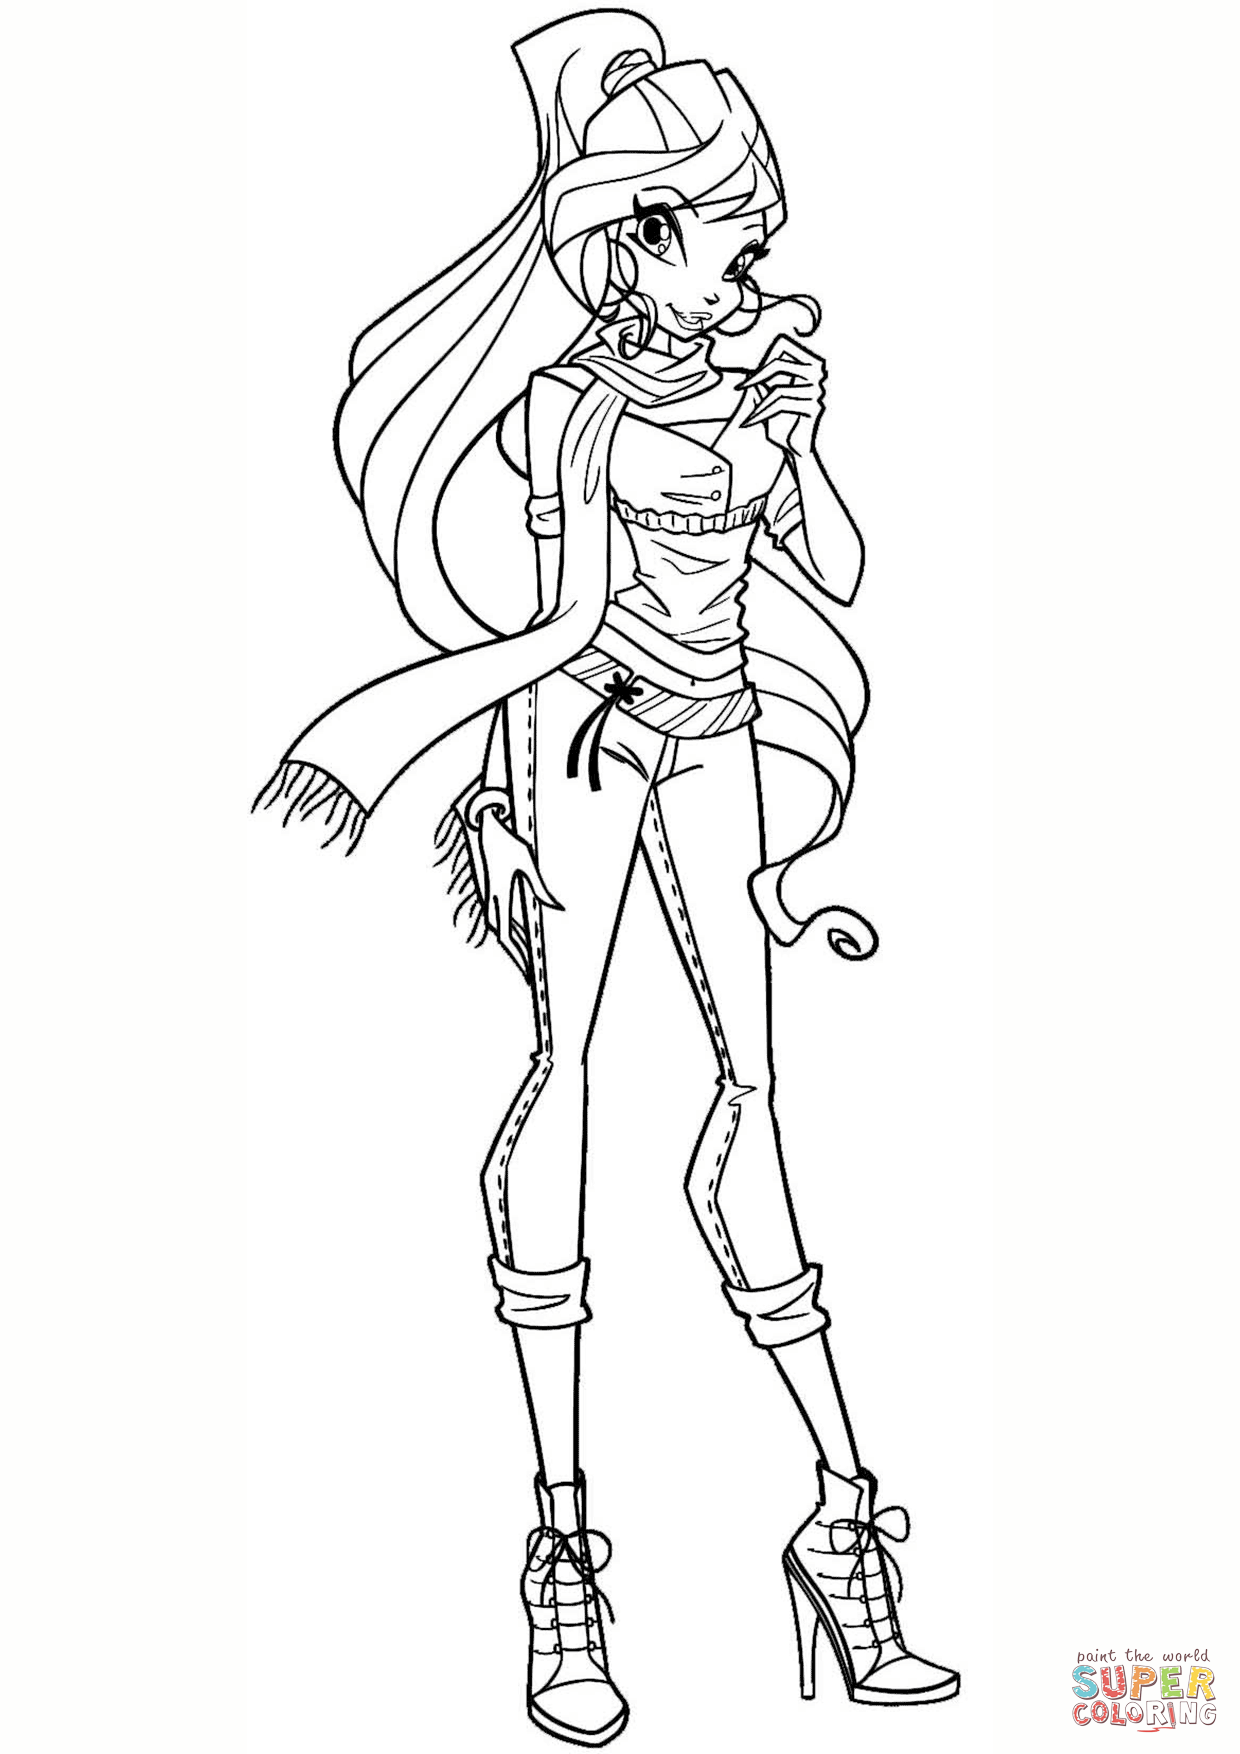 Get This Winx Club Coloring Pages Online Printable nhywg ! | 1754x1240